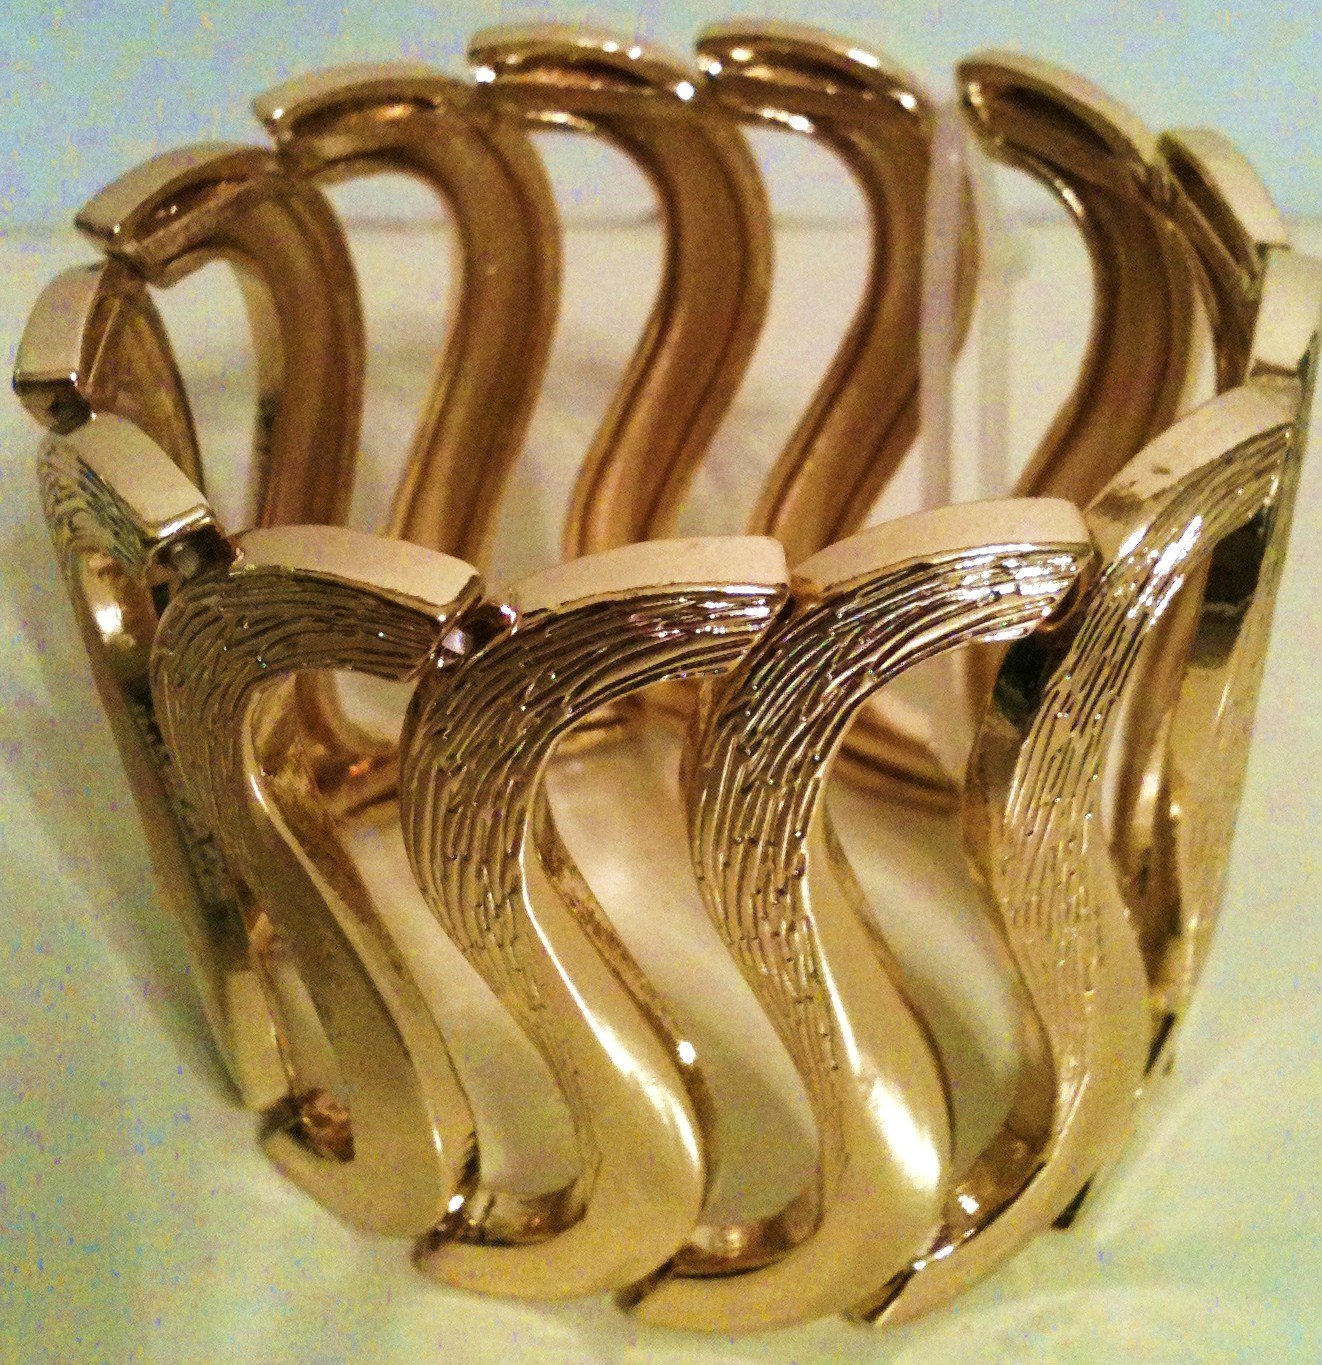 GOLD STRETCH BRACELET (NEW)